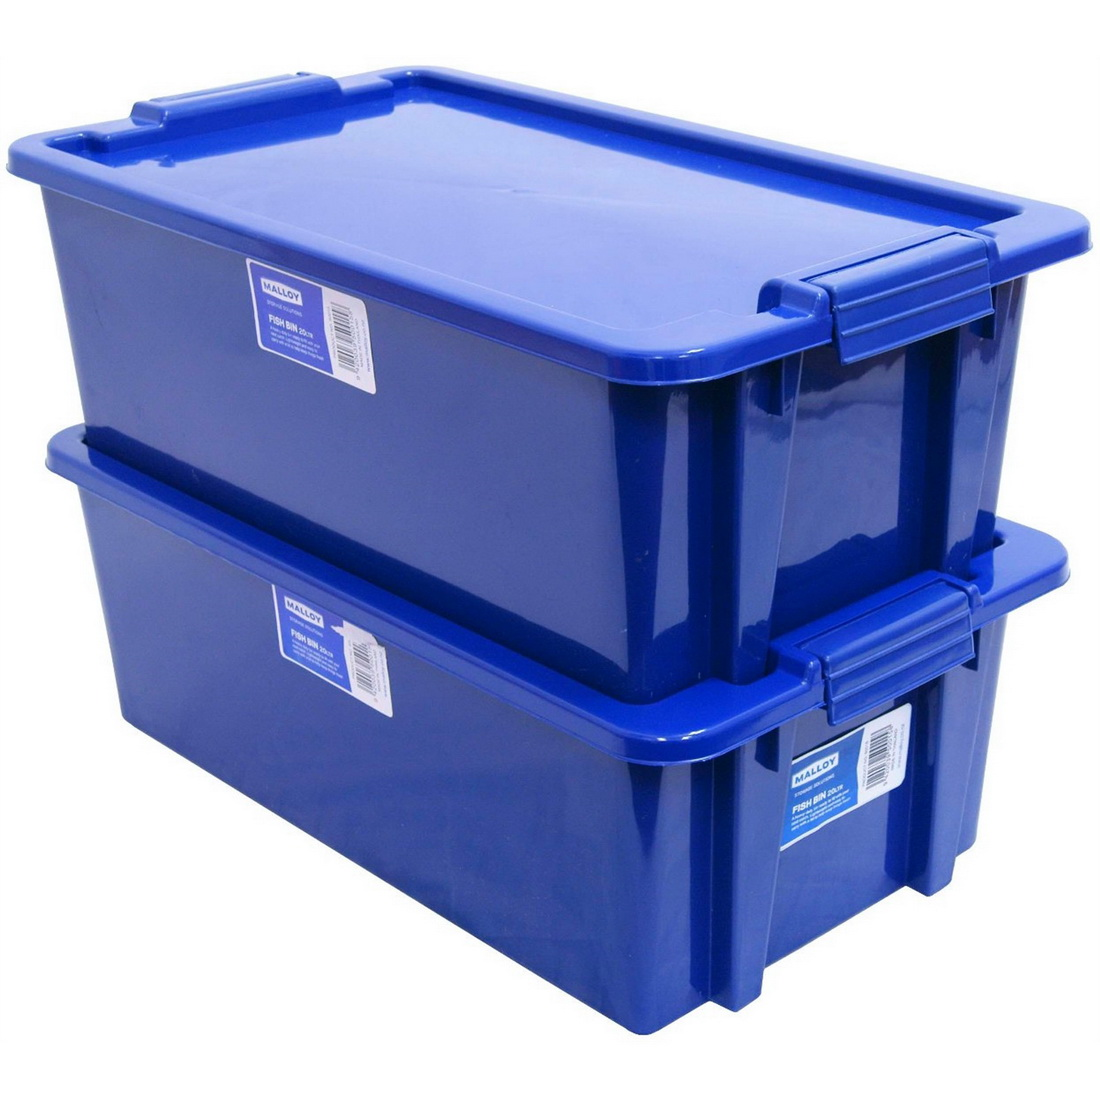 Fish Bin Plastic Storage With Lid 20L Blue S0015